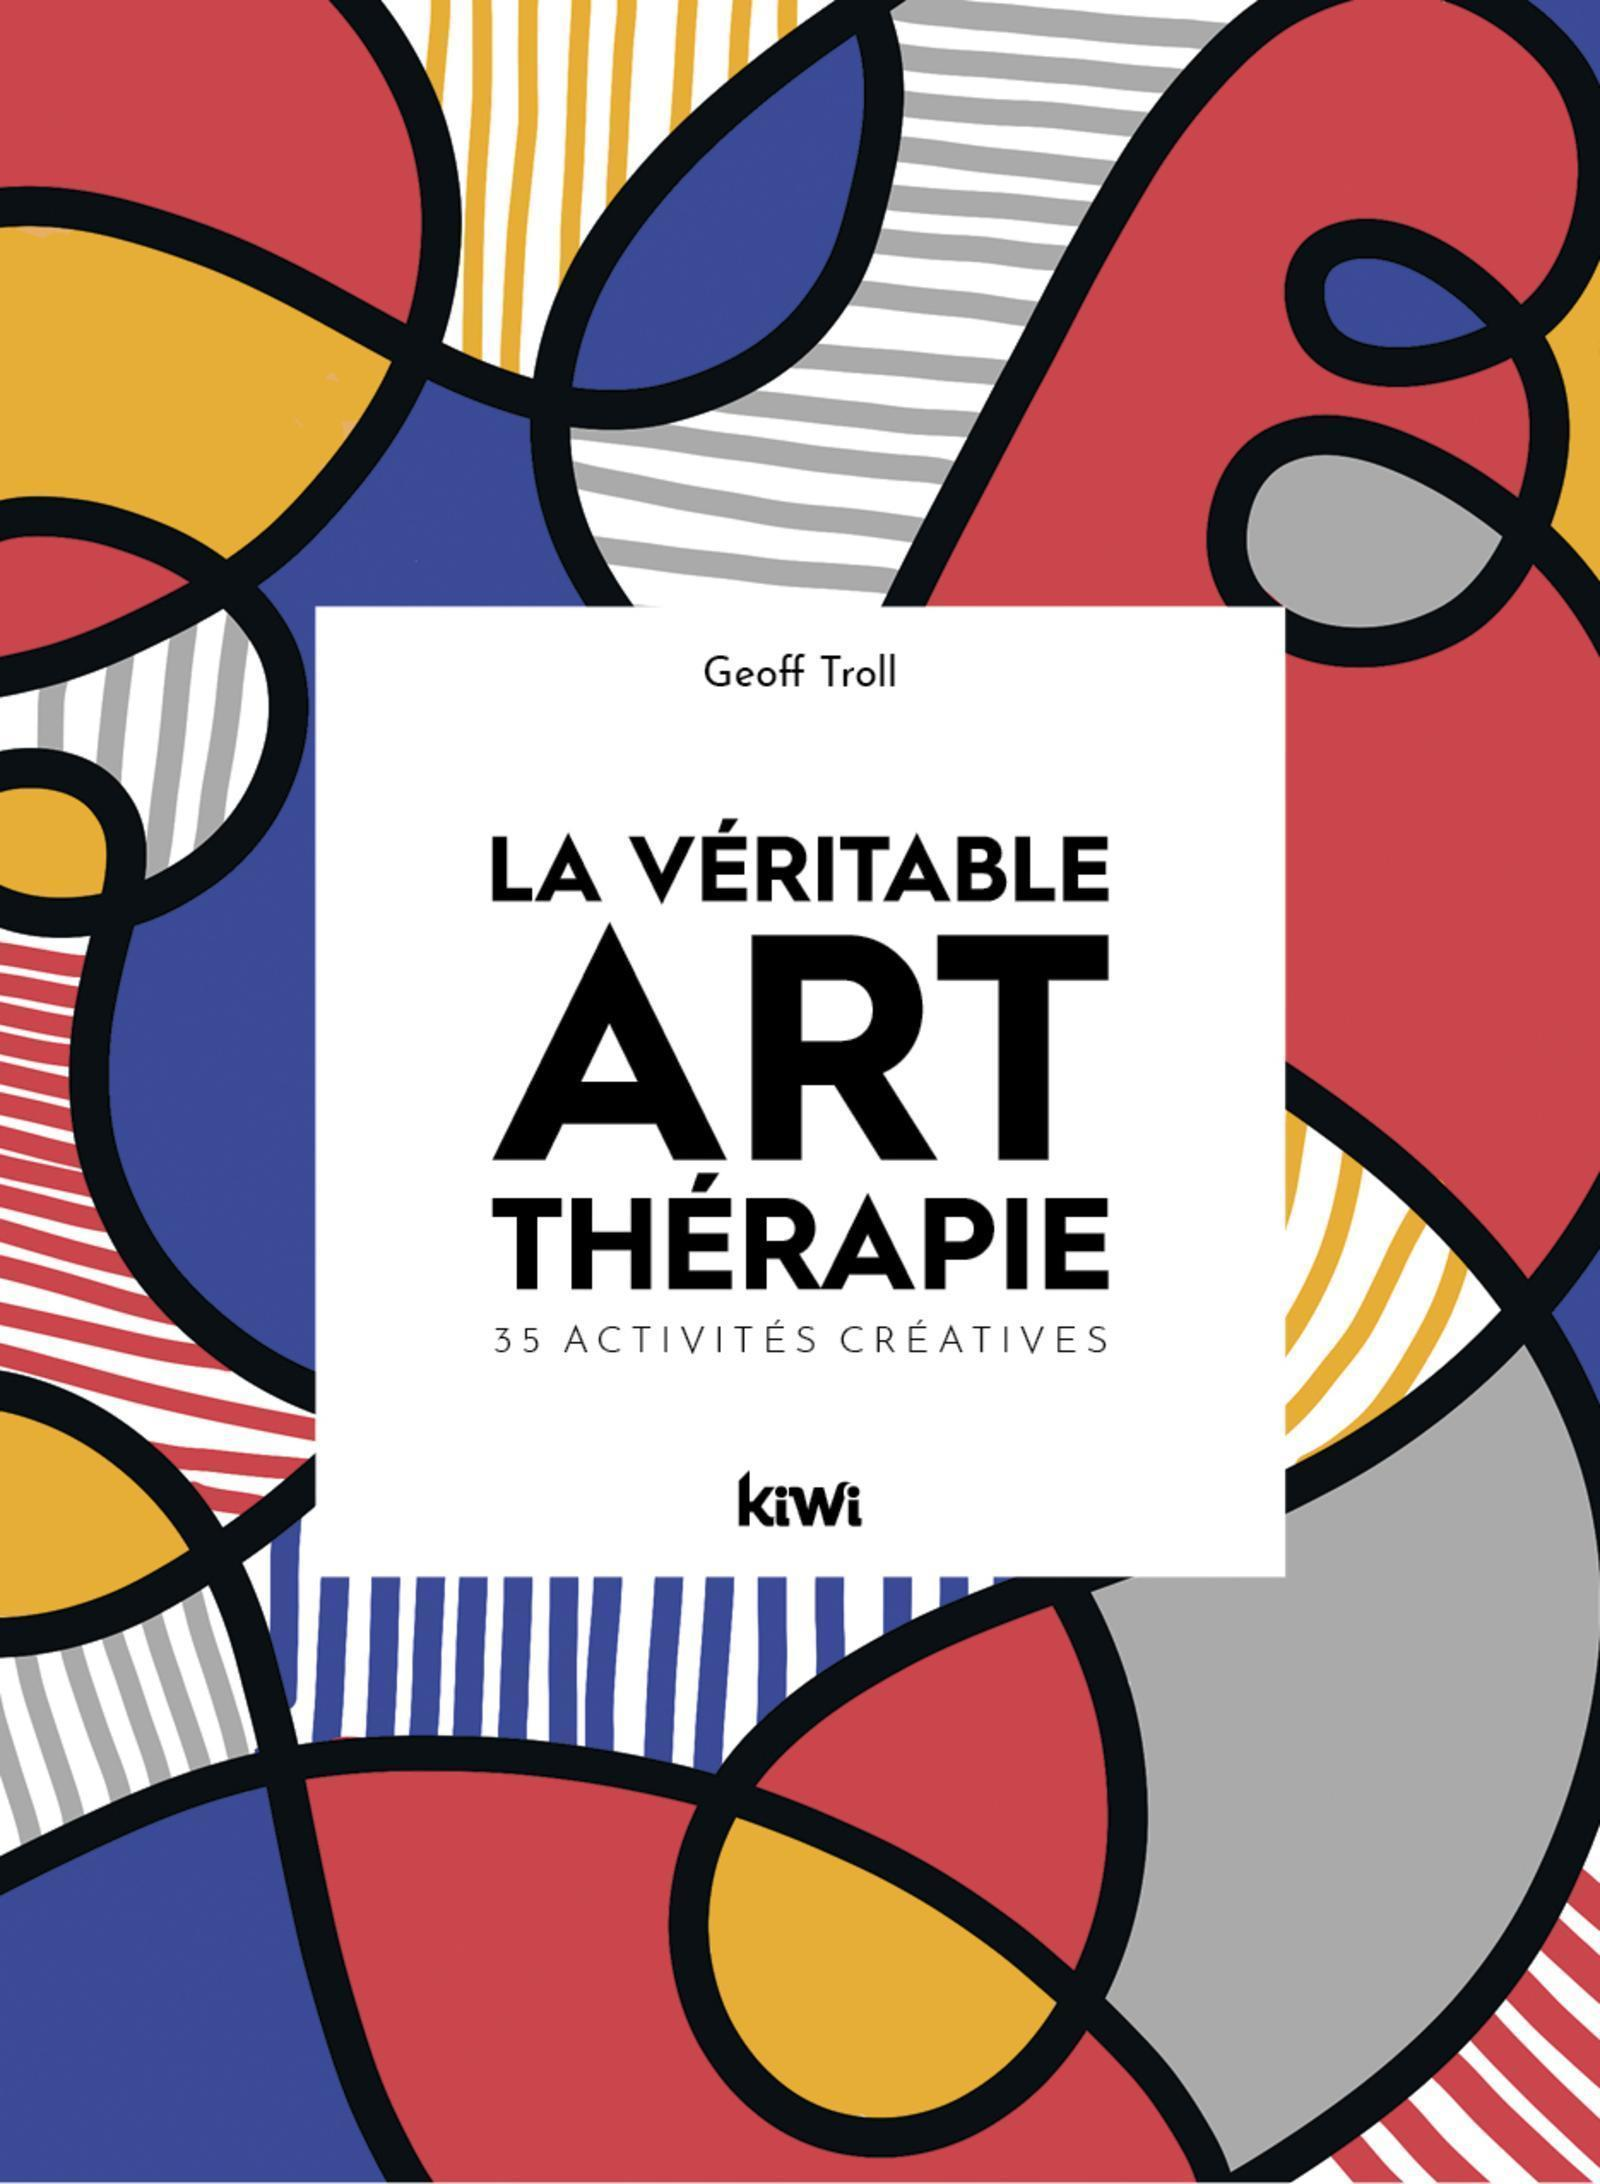 LA VERITABLE ART THERAPIE - 35 ACTIVITES CREATIVES